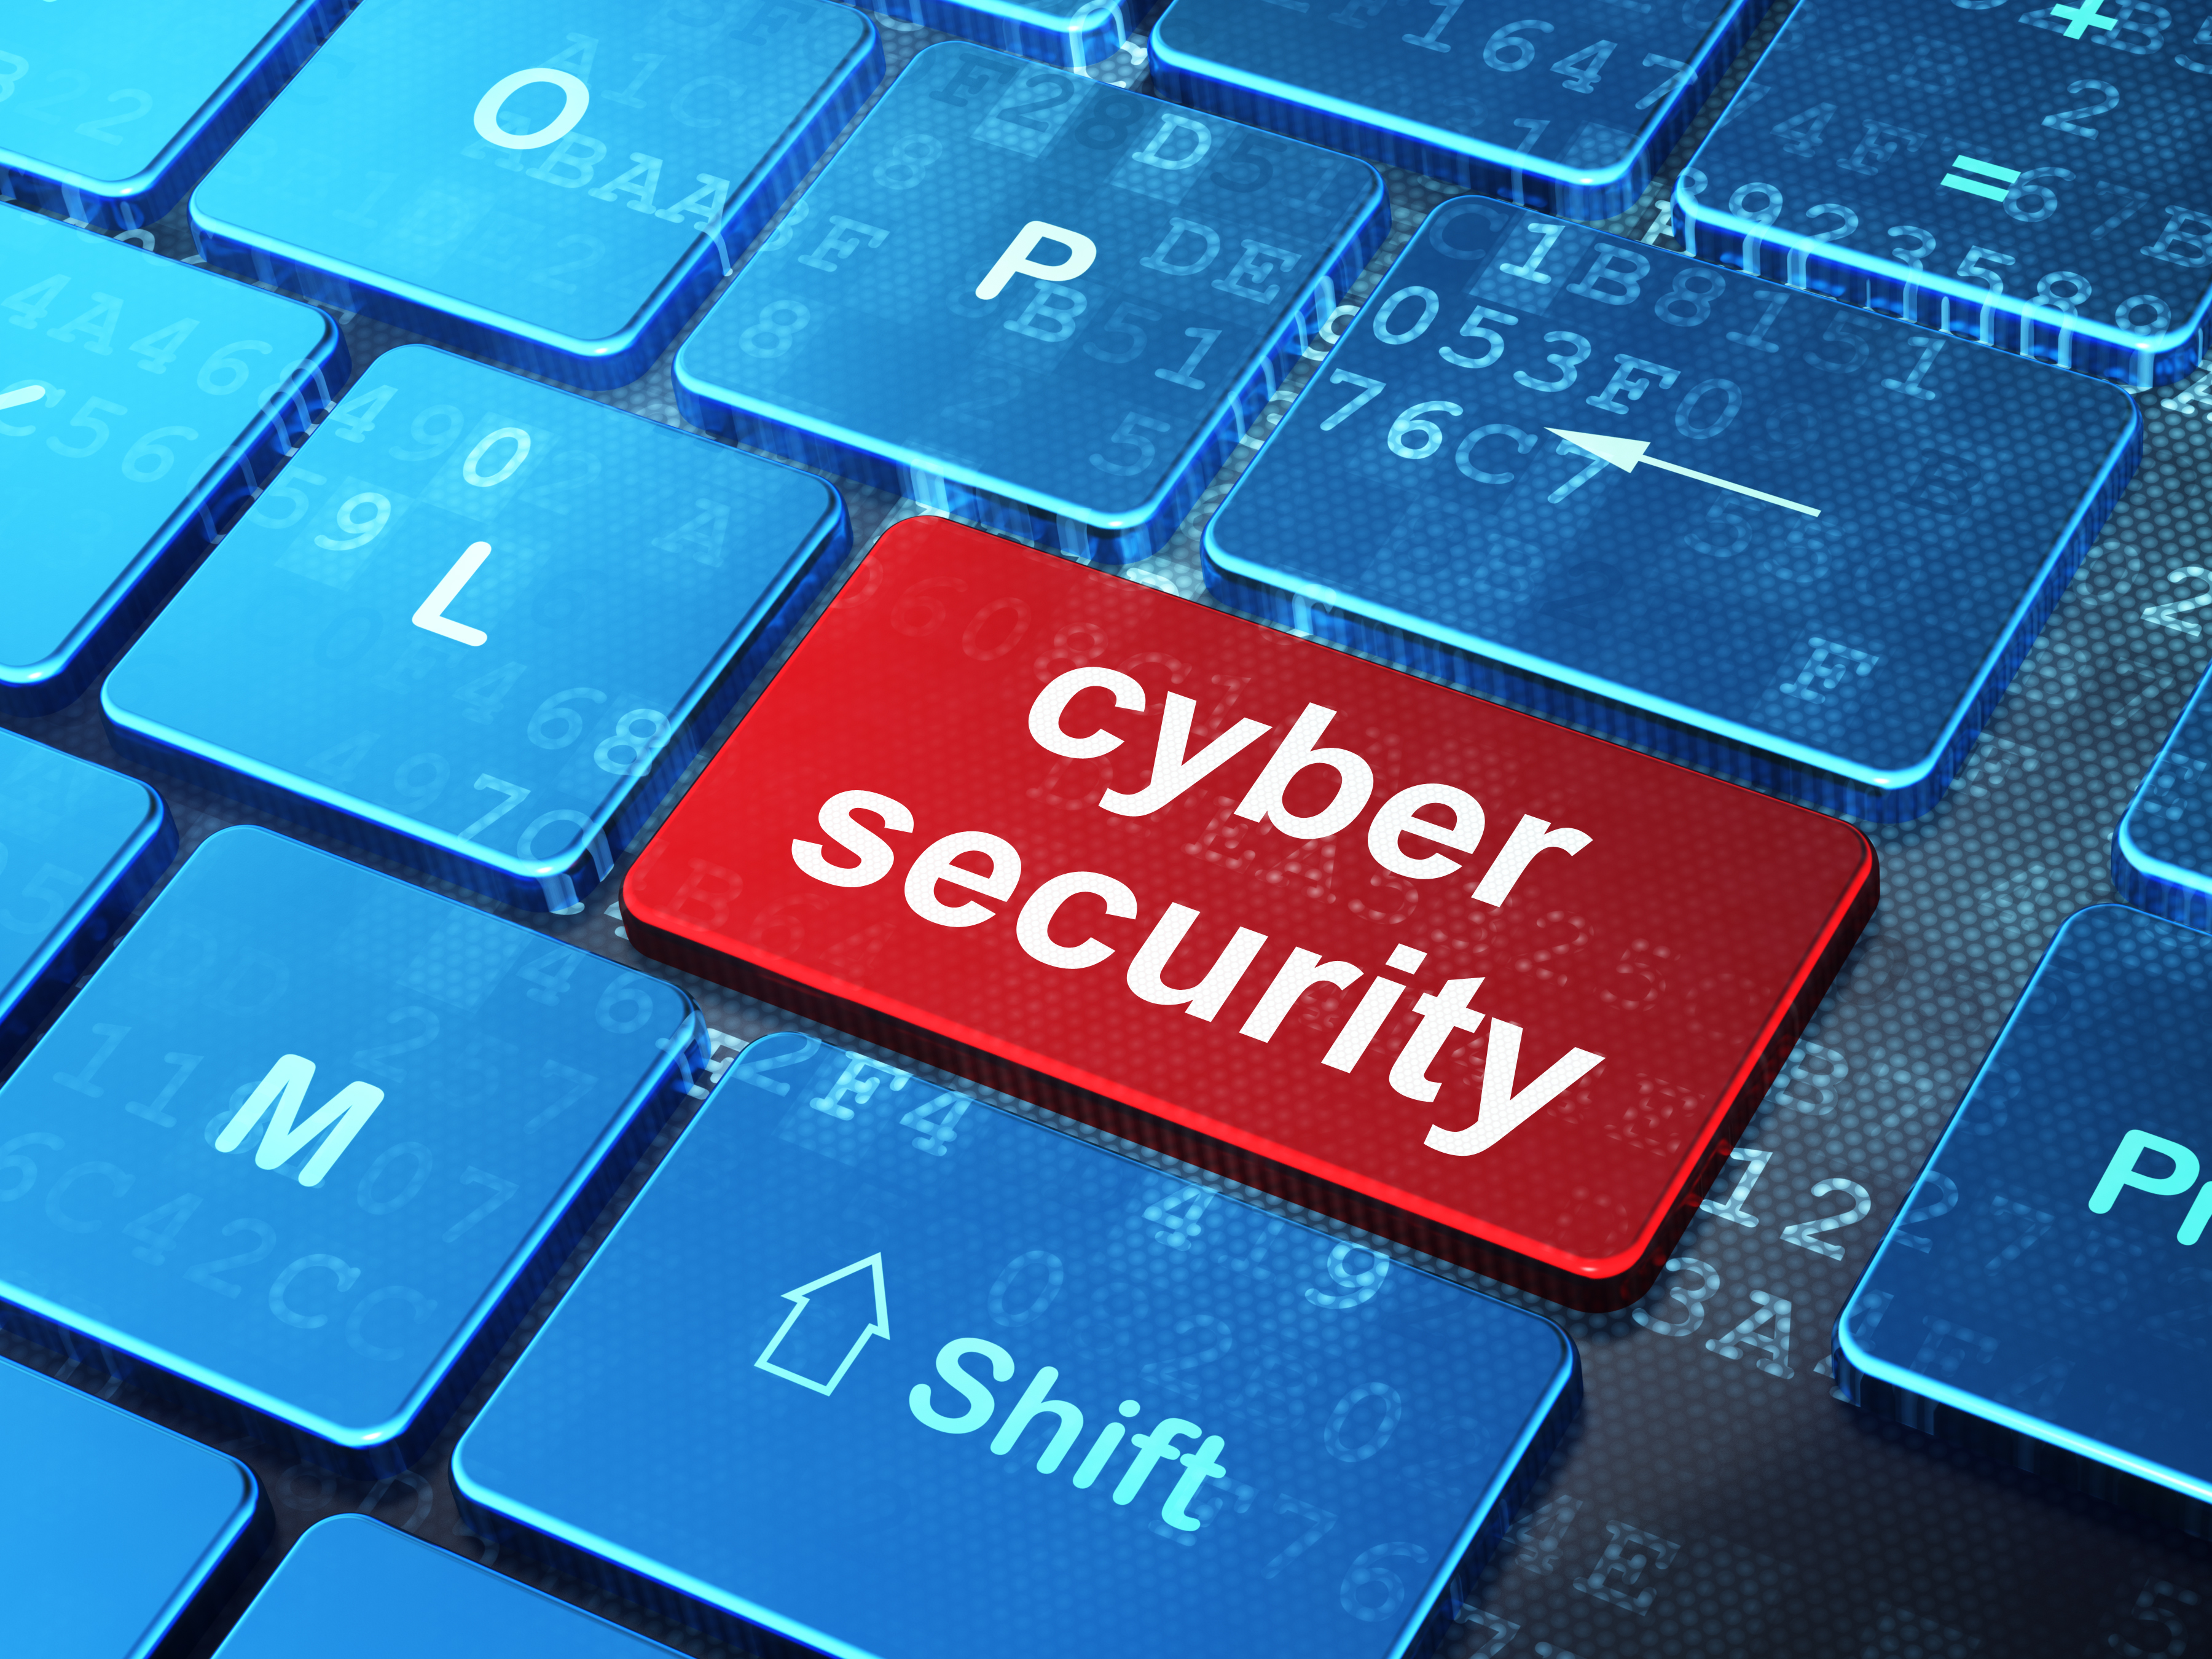 Cyber Security in Ghana: Talk or Action?